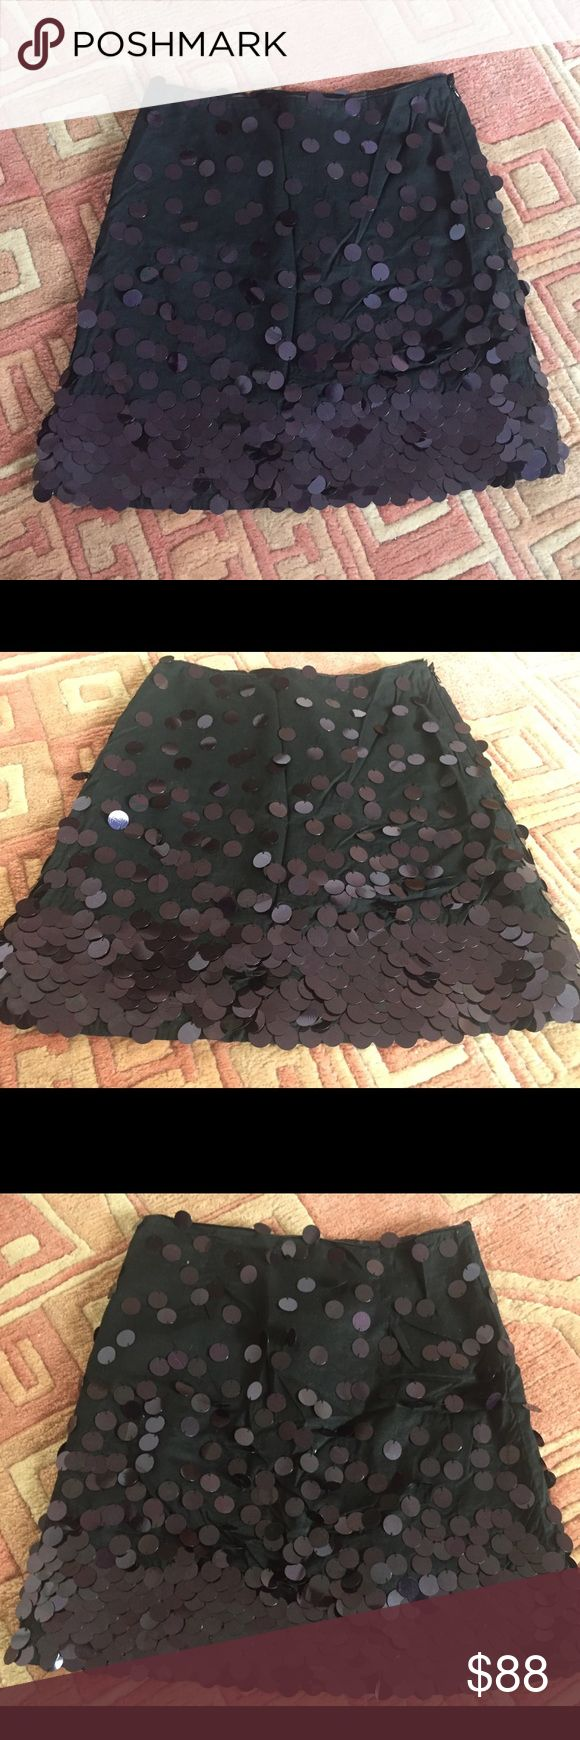 NWT French Connection party sequin skirt birthday Fun party skirt with circle sequins by French Connection size 2. Side zip. Some sequins may be missing; comes with extras. French Connection Skirts Mini